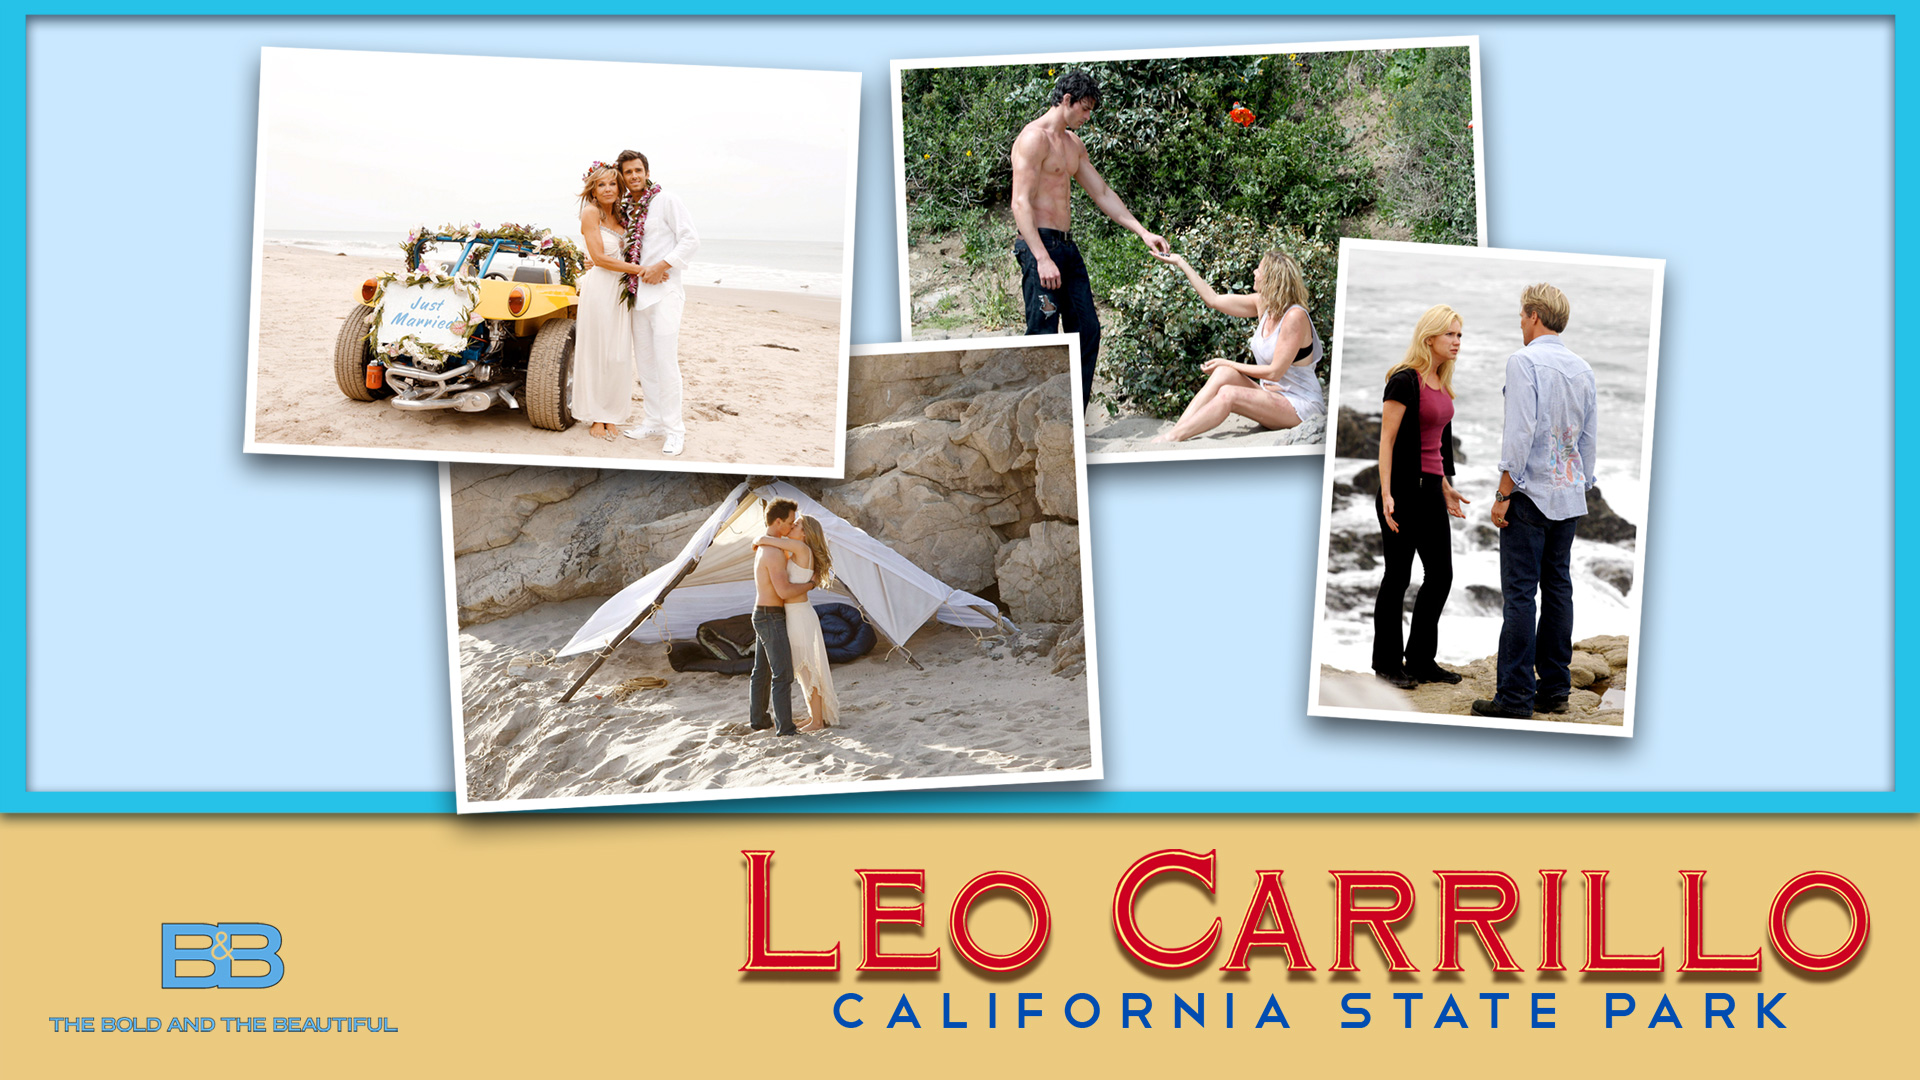 Leo Carrillo California State Park